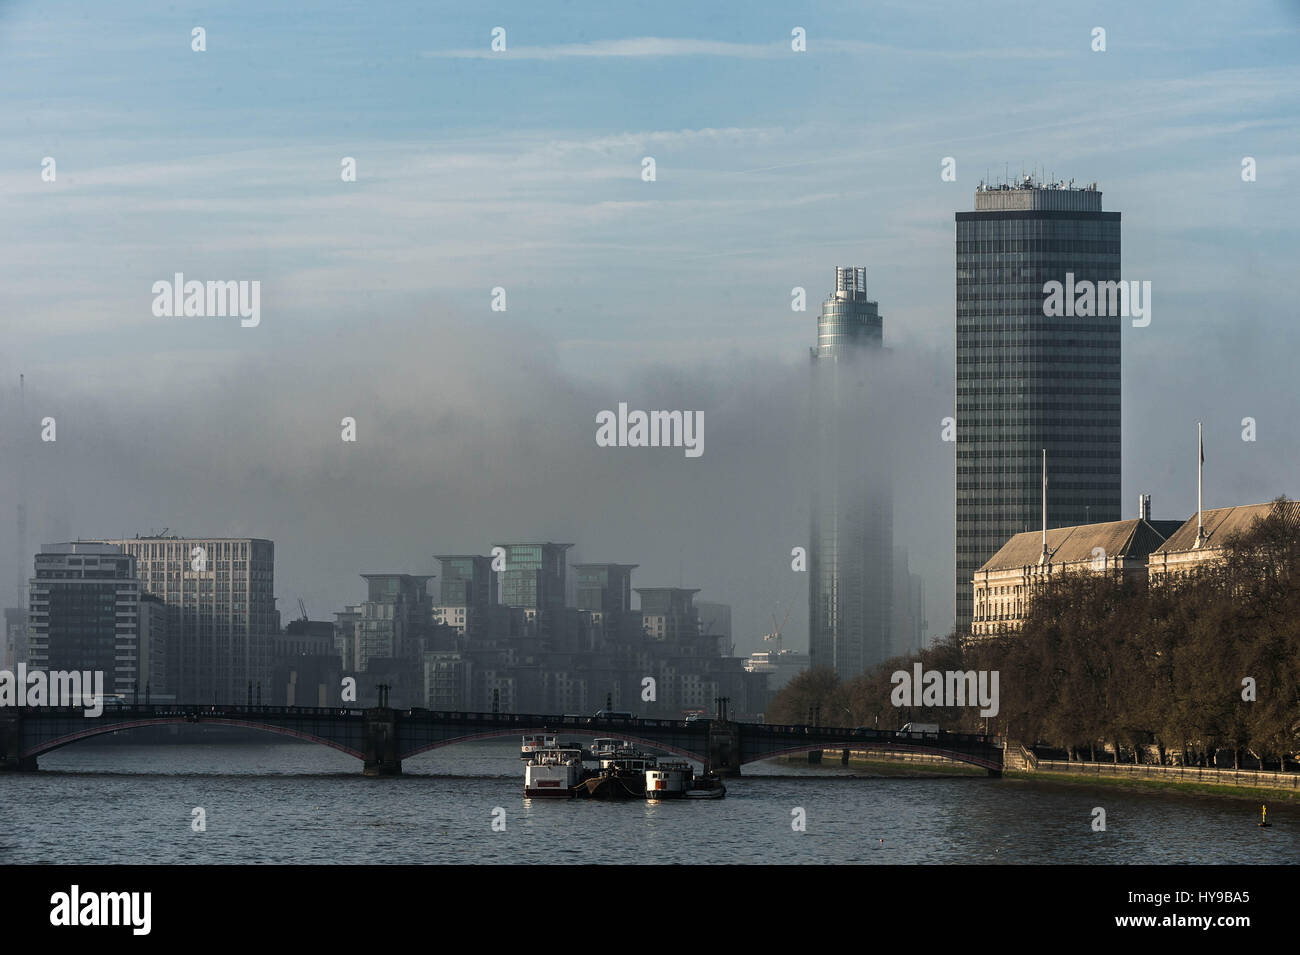 UK Weather: A dense layer of morning smog hangs over central London skyline. Buildings (R-L) Millbank Tower and Stock Photo